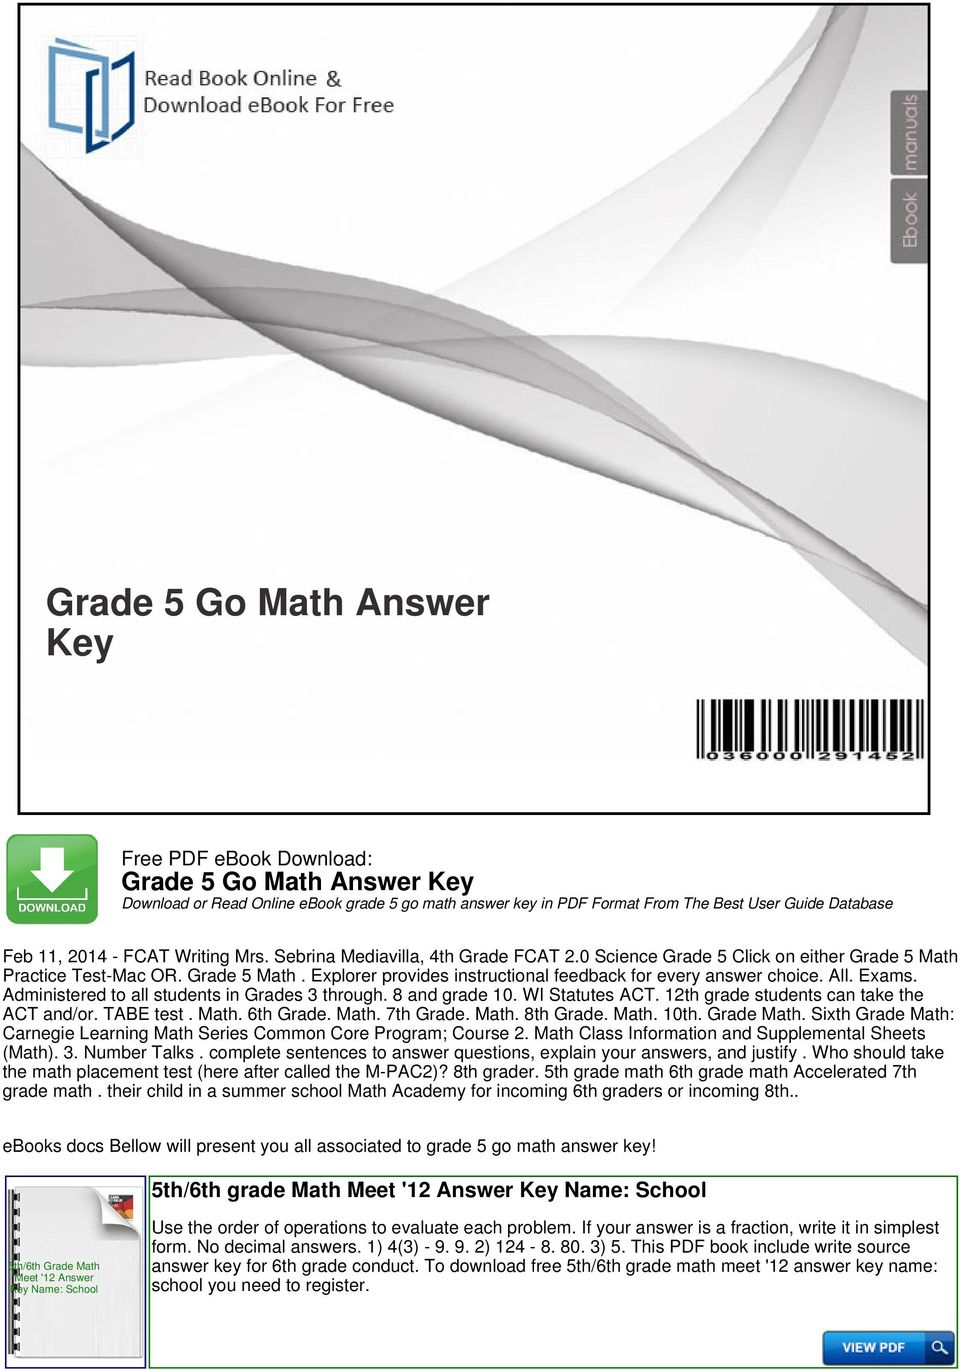 Grade 5 Go Math Answer Key - PDF